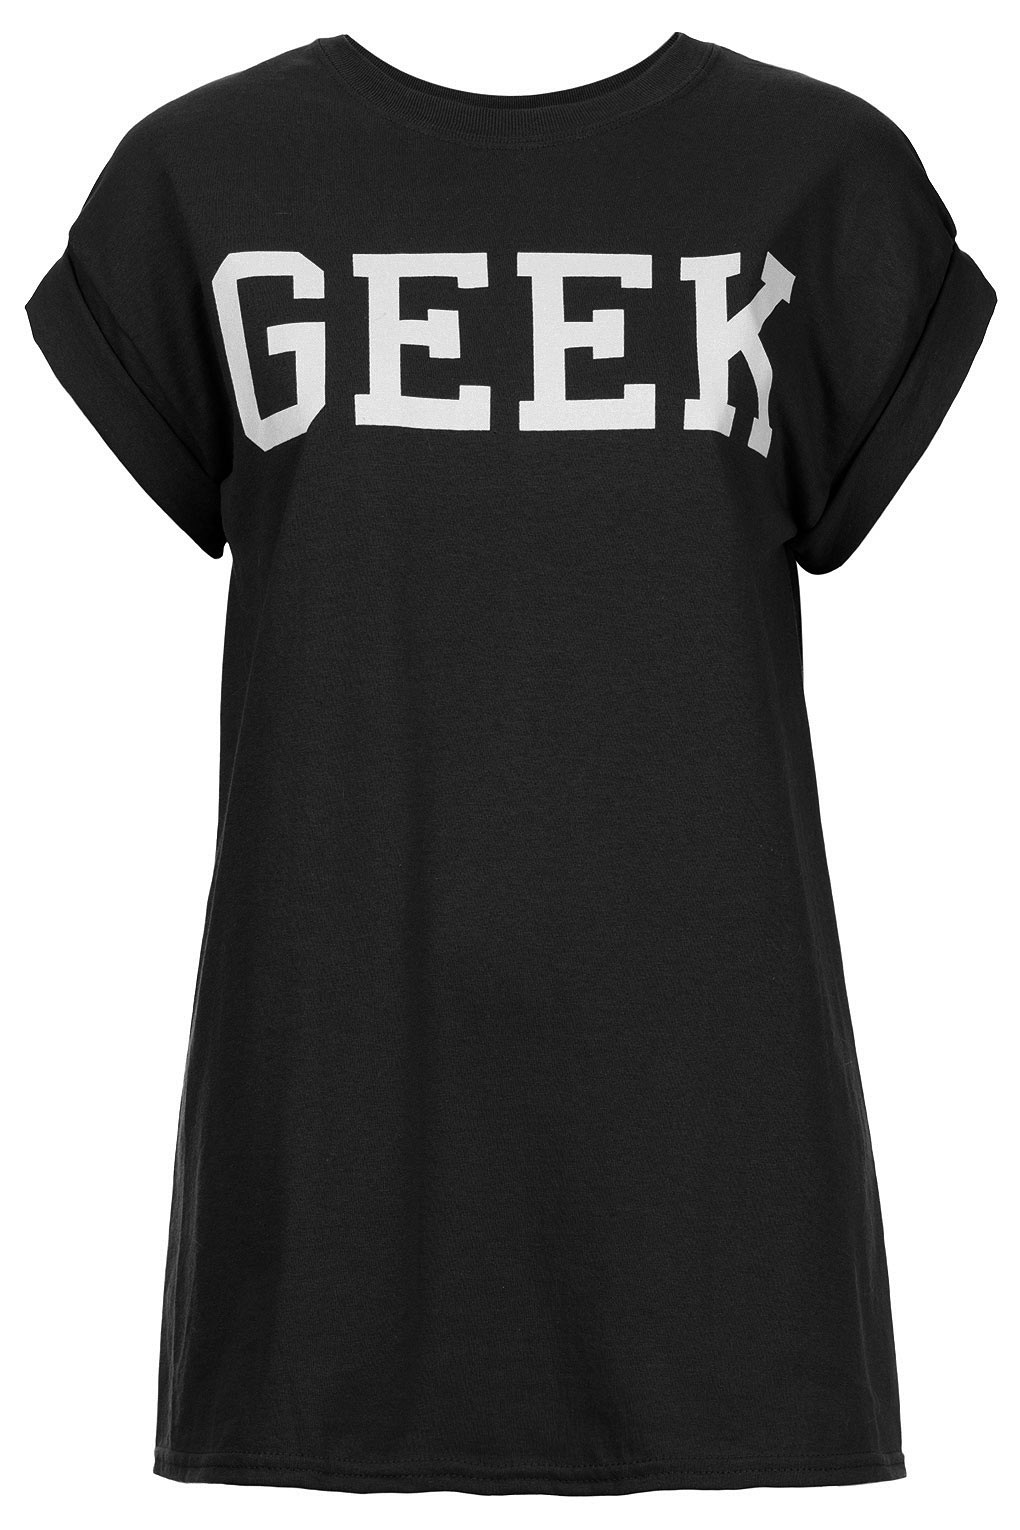 Get the Look: Geek Tees + Jumpers For Less | She Hearts The